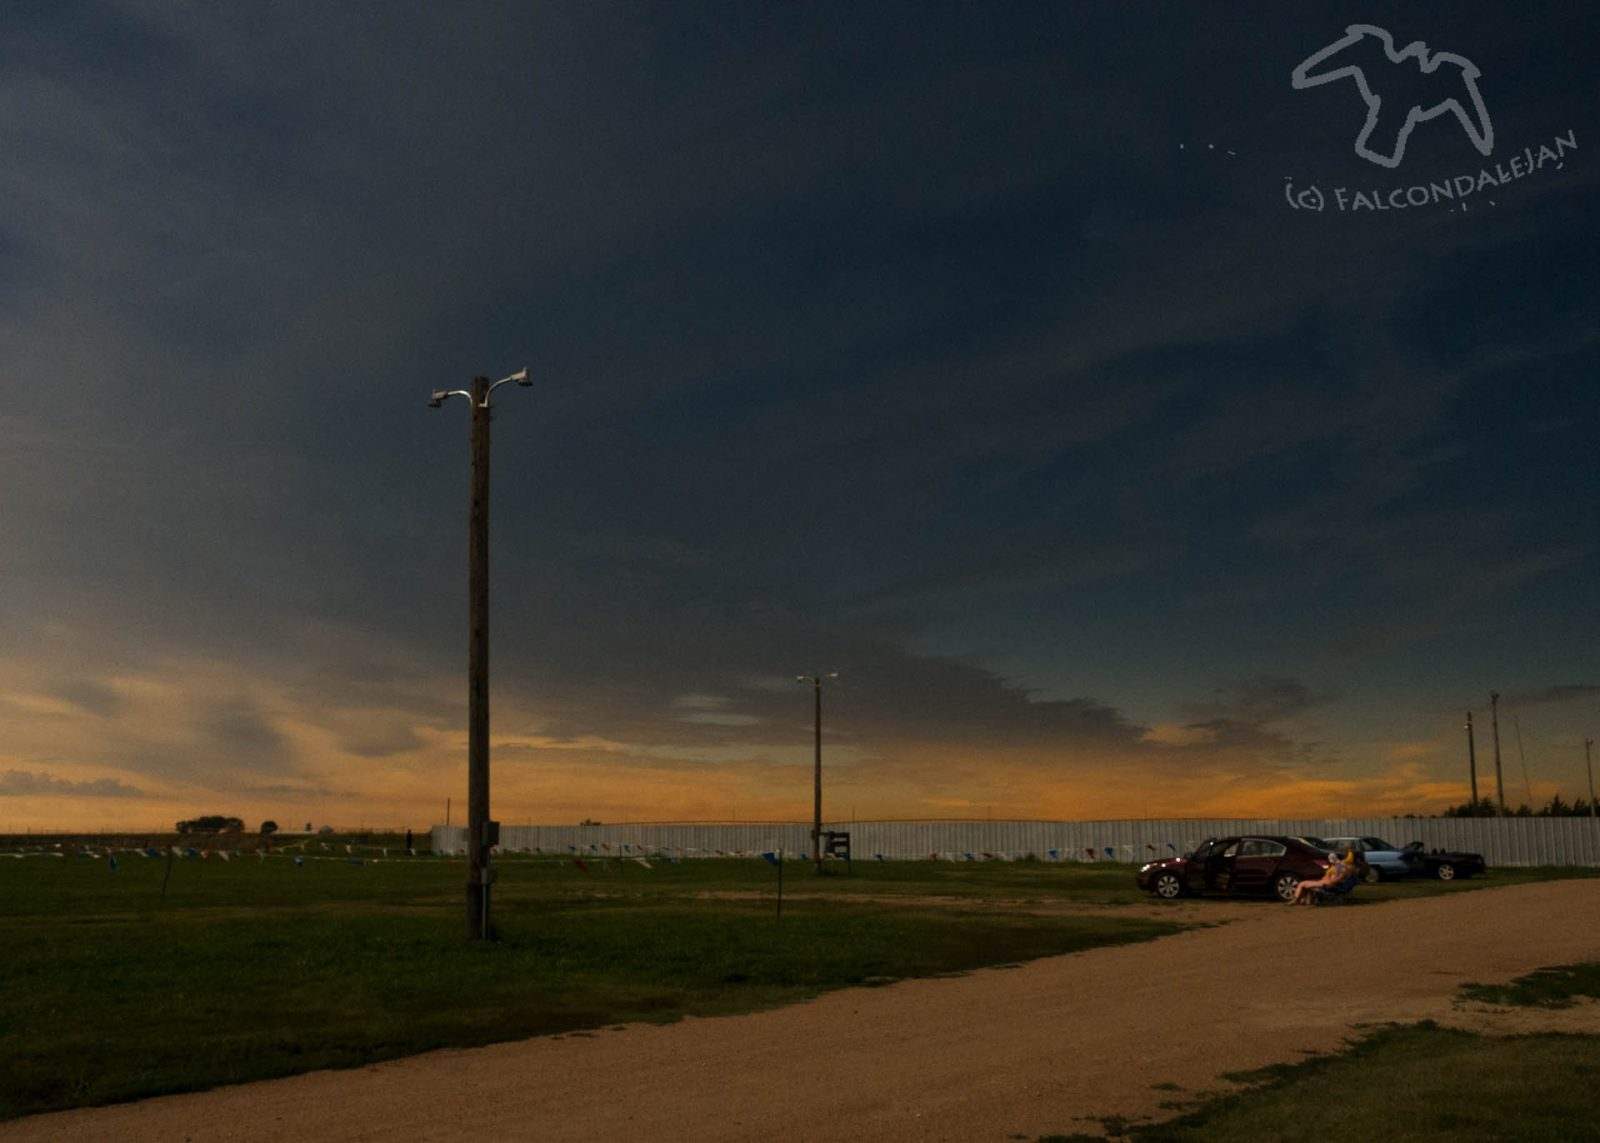 Story and photos of our family trip to see totality of the 2017 solar eclipse, Nebraska USA. How we did vacation planning, eclipse chasing and camera setup.